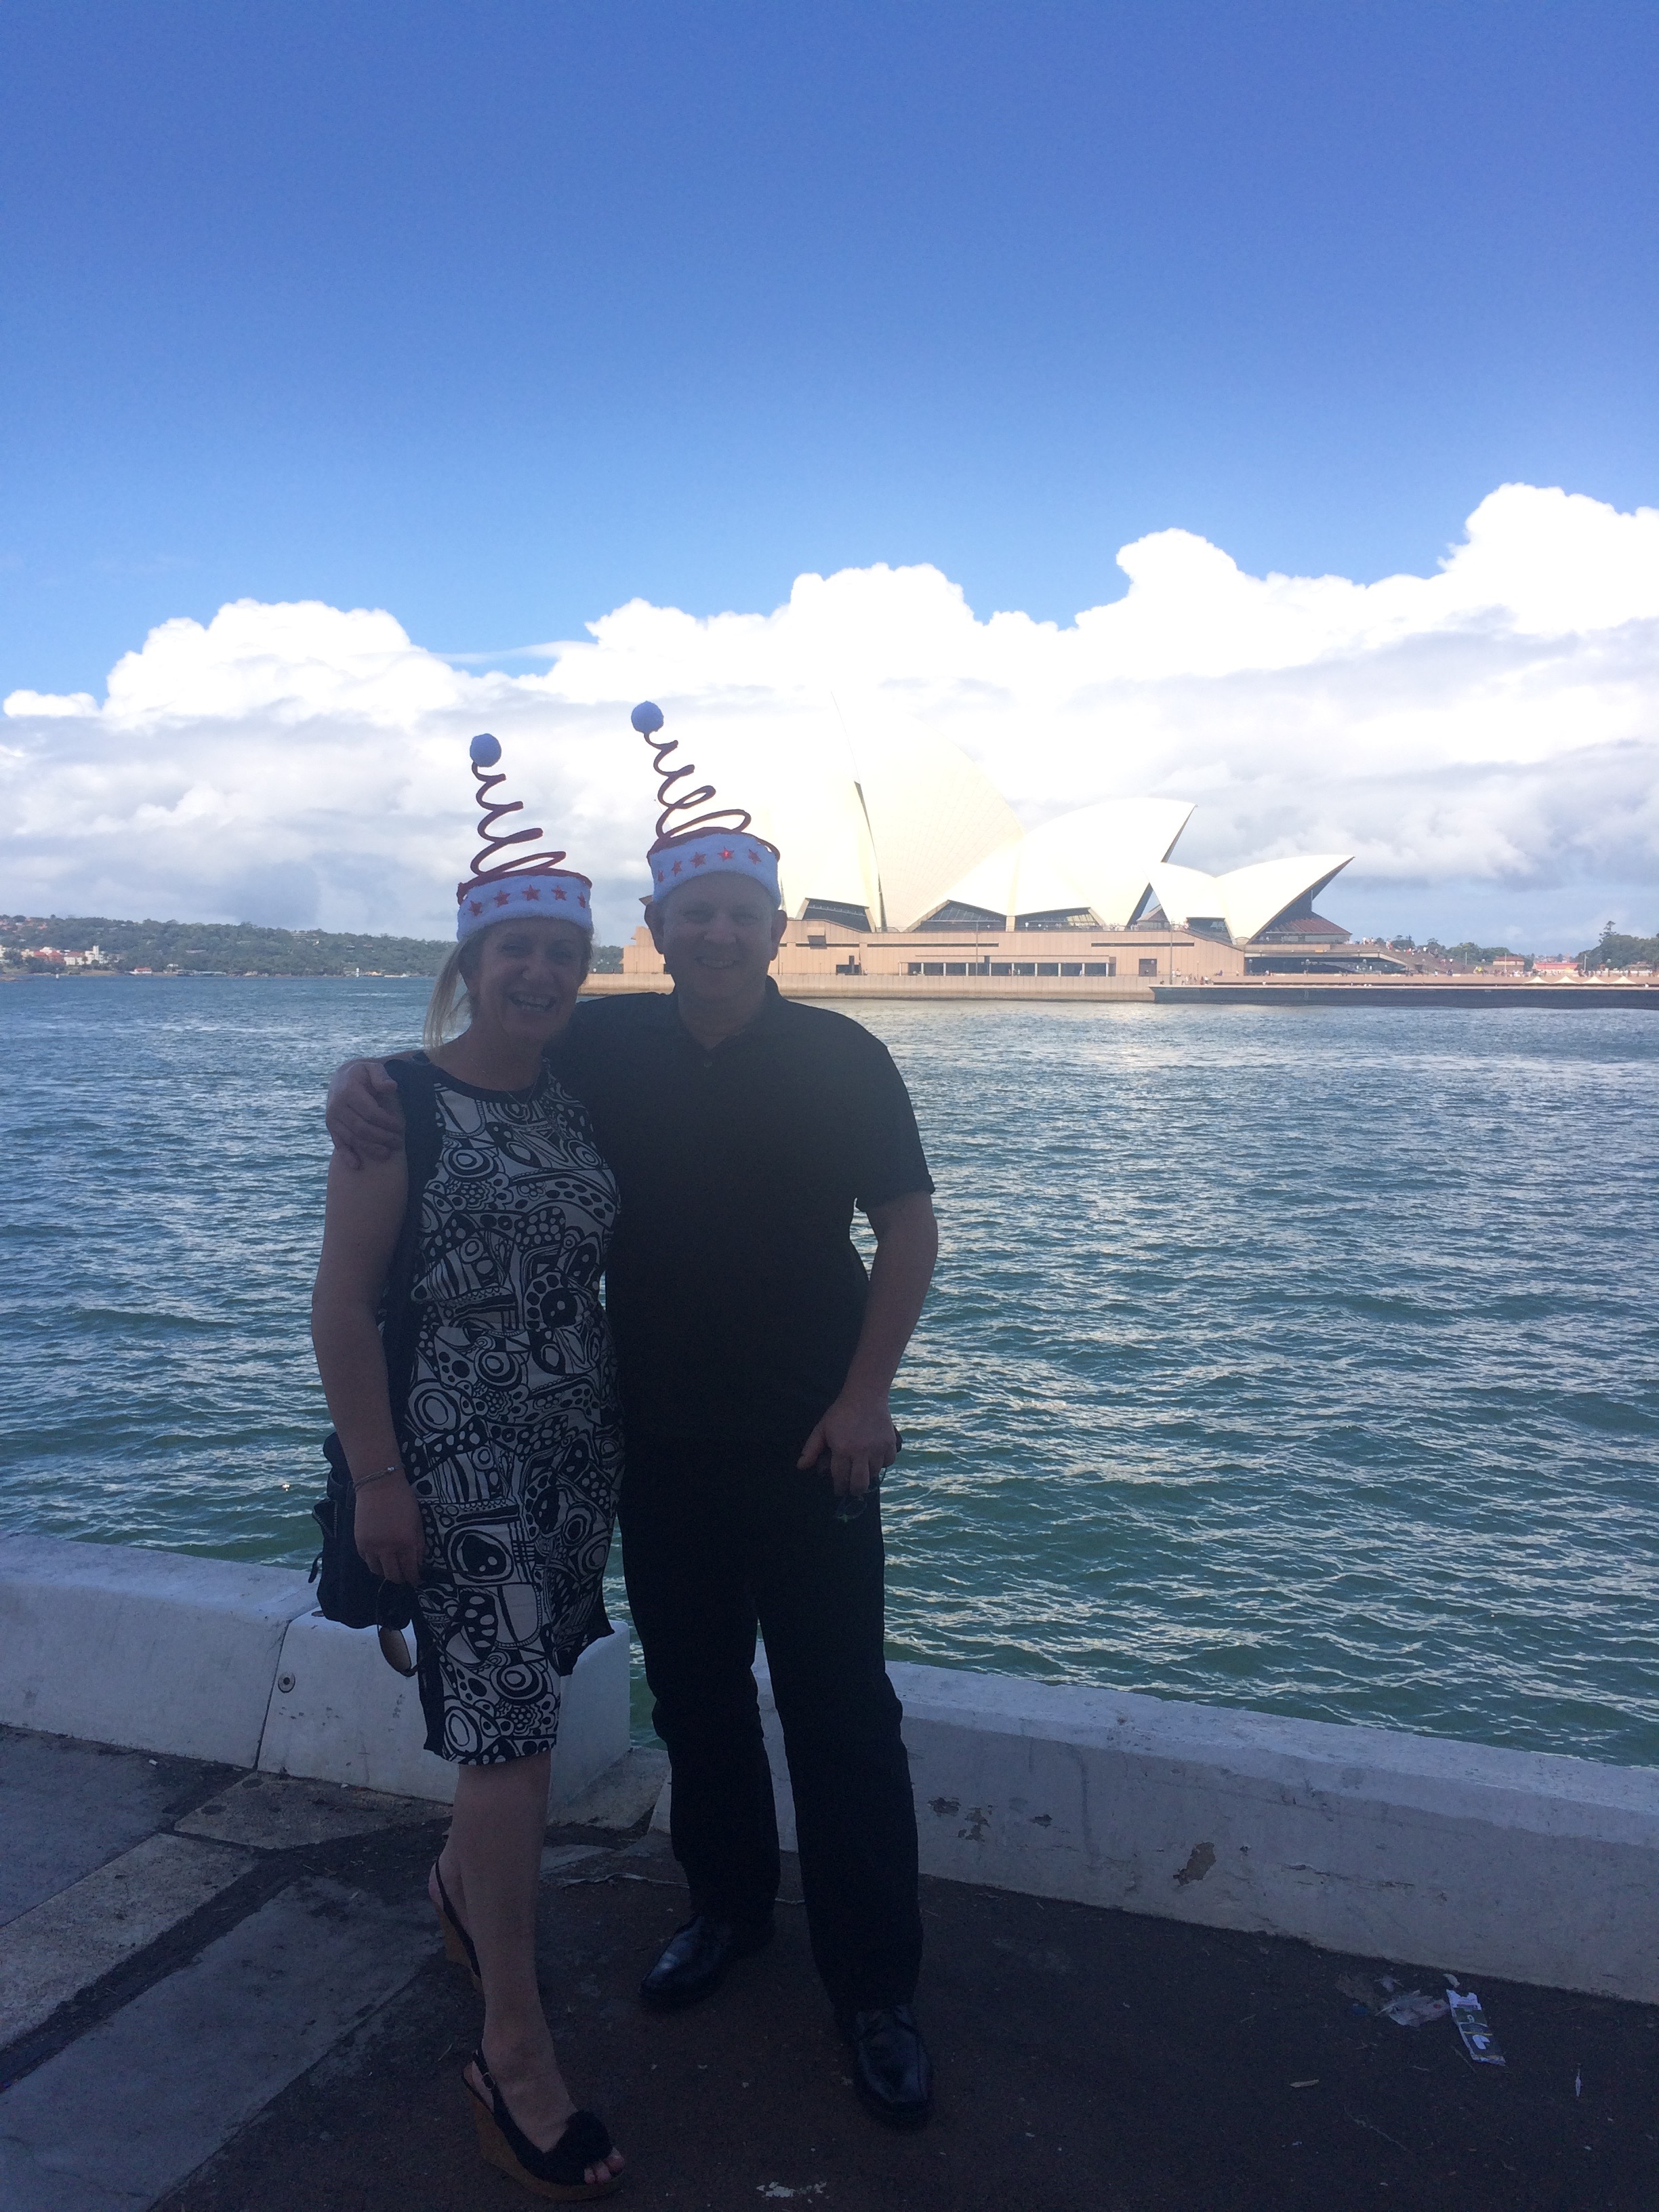 Our last Christmas in Sydney